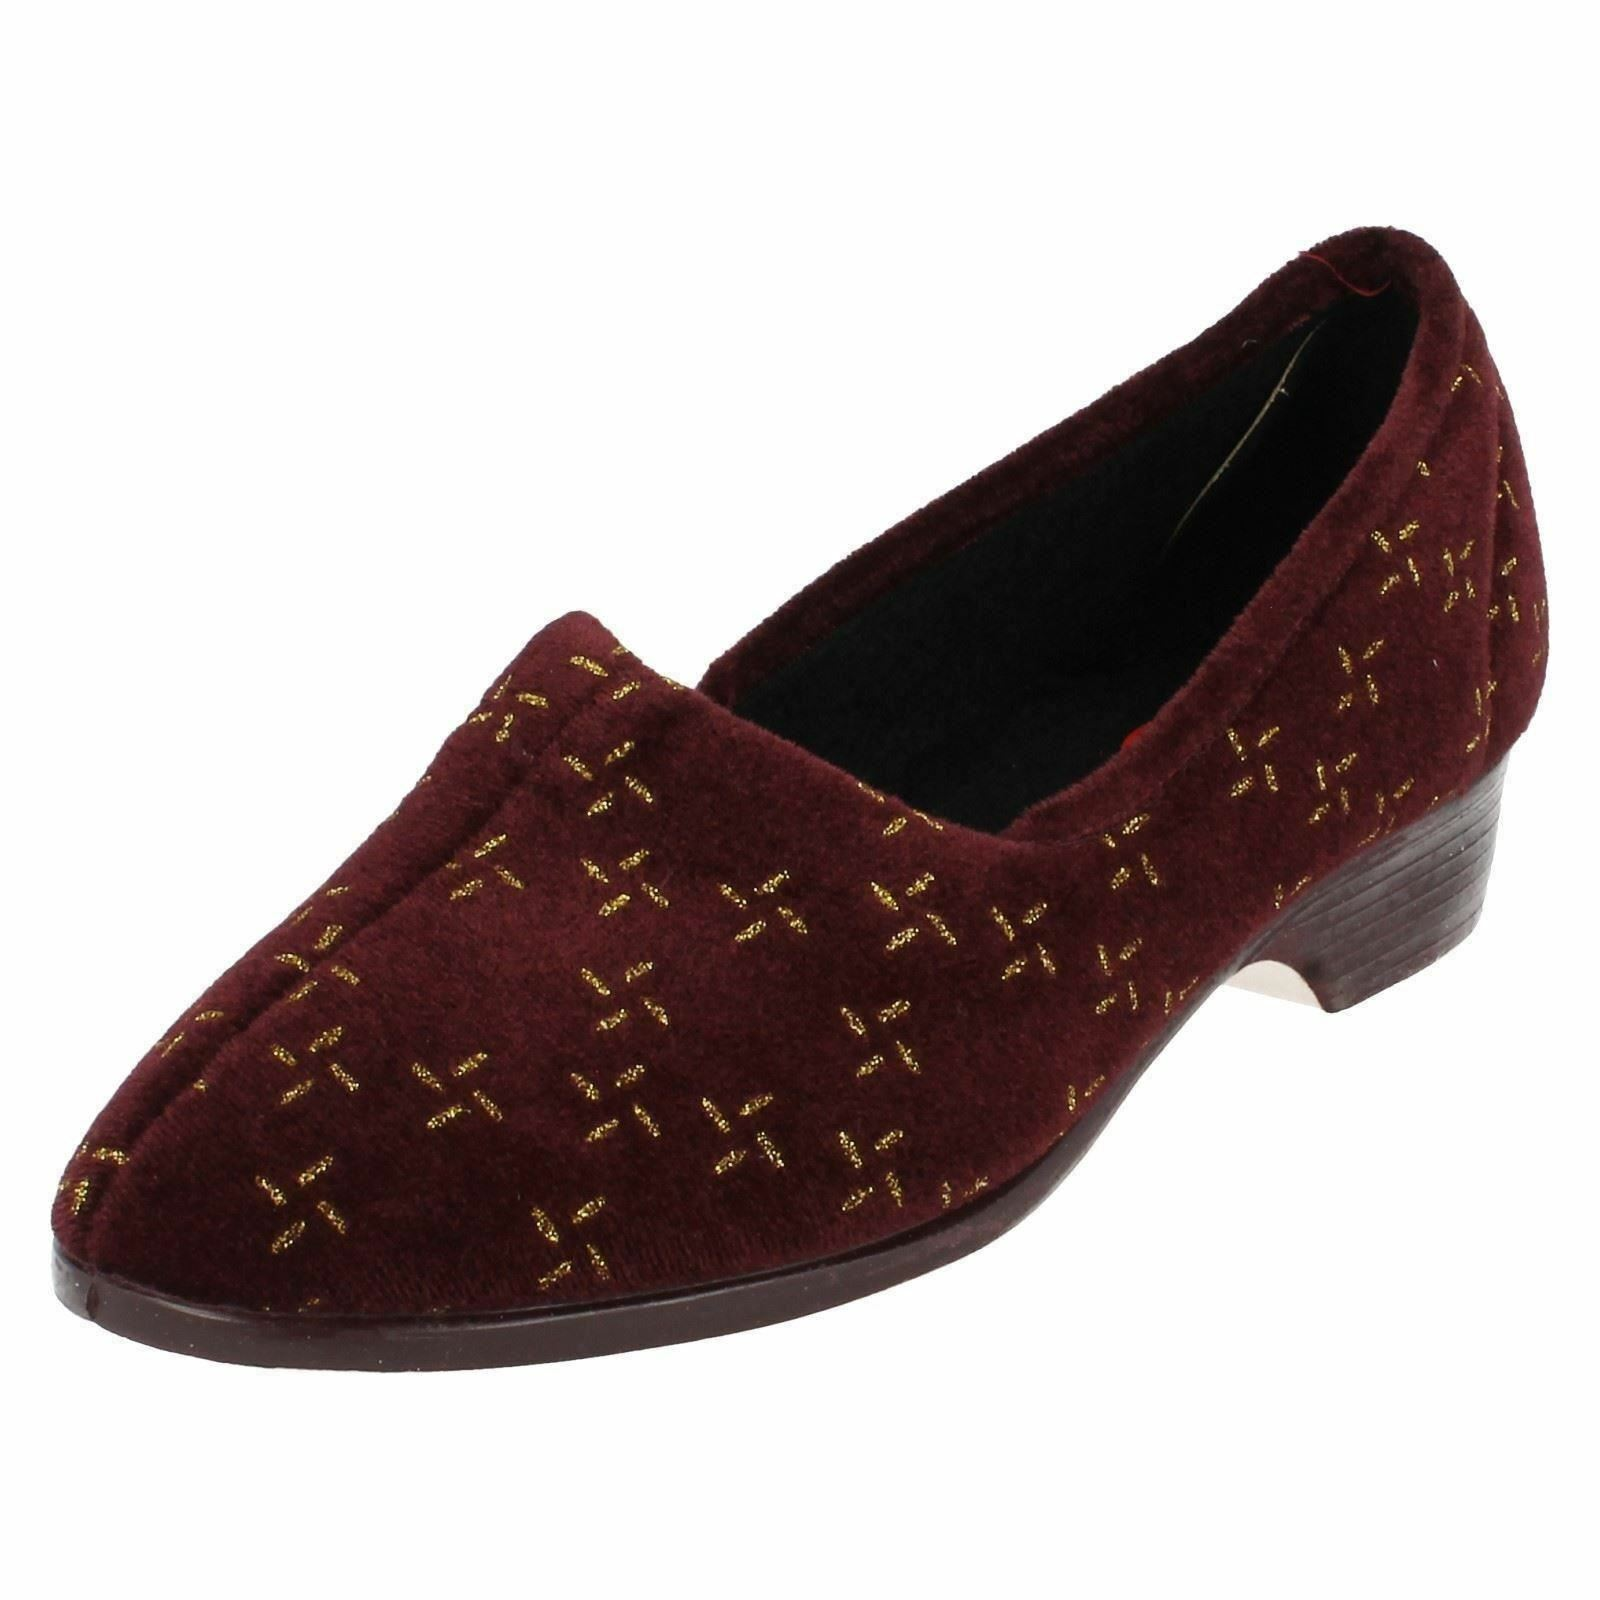 Ladies Ladylove Burgundy and Gold slippers   Elsa